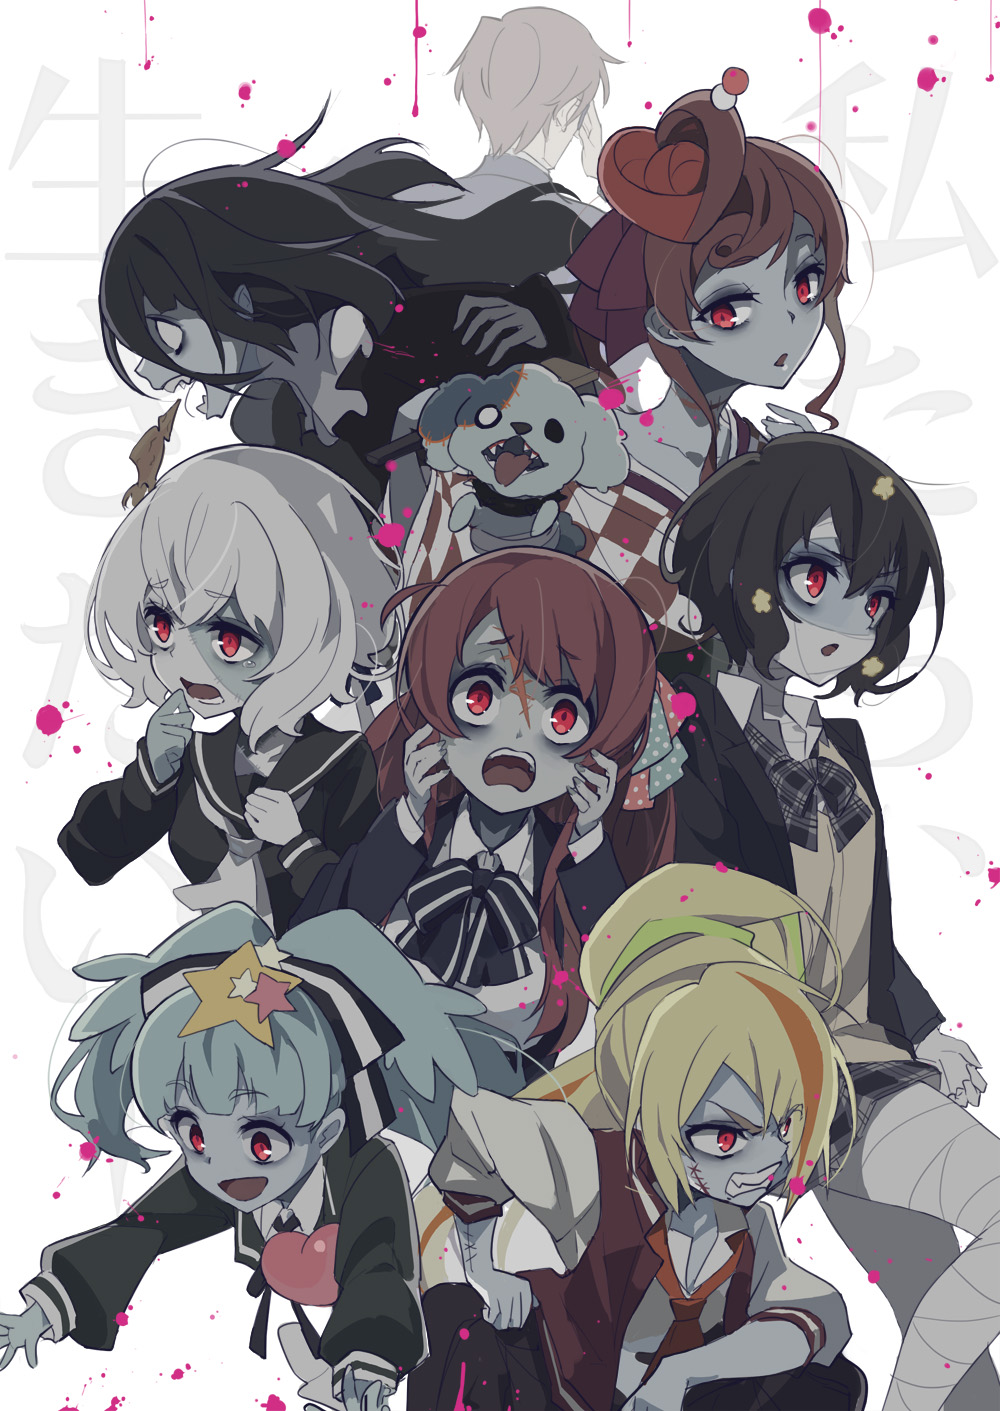 1boy 6+girls ahoge angry aqua_hair bandage bandaged_hand bandaged_head bandaged_leg bandages black_dress black_hair black_serafuku blazer blonde_hair blue_skin bow brown_hair cardigan checkered checkered_kimono collar dango_hair_ornament dog dress eyebrows_visible_through_hair facial_scar facing_away fangs food_themed_hair_ornament forehead_scar hair_between_eyes hair_ornament hair_over_one_eye hair_ribbon heart highres hoshikawa_lily jacket japanese_clothes kimono konno_junko letterman_jacket light_green_hair long_hair long_sleeves looking_at_viewer low_twintails madaragi minamoto_sakura mizuno_ai multicolored_hair multiple_girls neck_scar neckerchief necktie nikaidou_saki open_mouth orange_hair patchwork_skin plaid plaid_bow plaid_neckwear plaid_skirt polka_dot polka_dot_bow ponytail red_eyes redhead ribbon romero_(zombie_land_saga) sailor_collar scar scared school_uniform serafuku short_hair silver_hair skirt smile spiked_collar spikes splatter squid star star_hair_ornament stitches streaked_hair tatsumi_koutarou tearing_up tongue tongue_out twintails undead v-shaped_eyebrows yamada_tae yuugiri_(zombie_land_saga) zombie zombie_land_saga